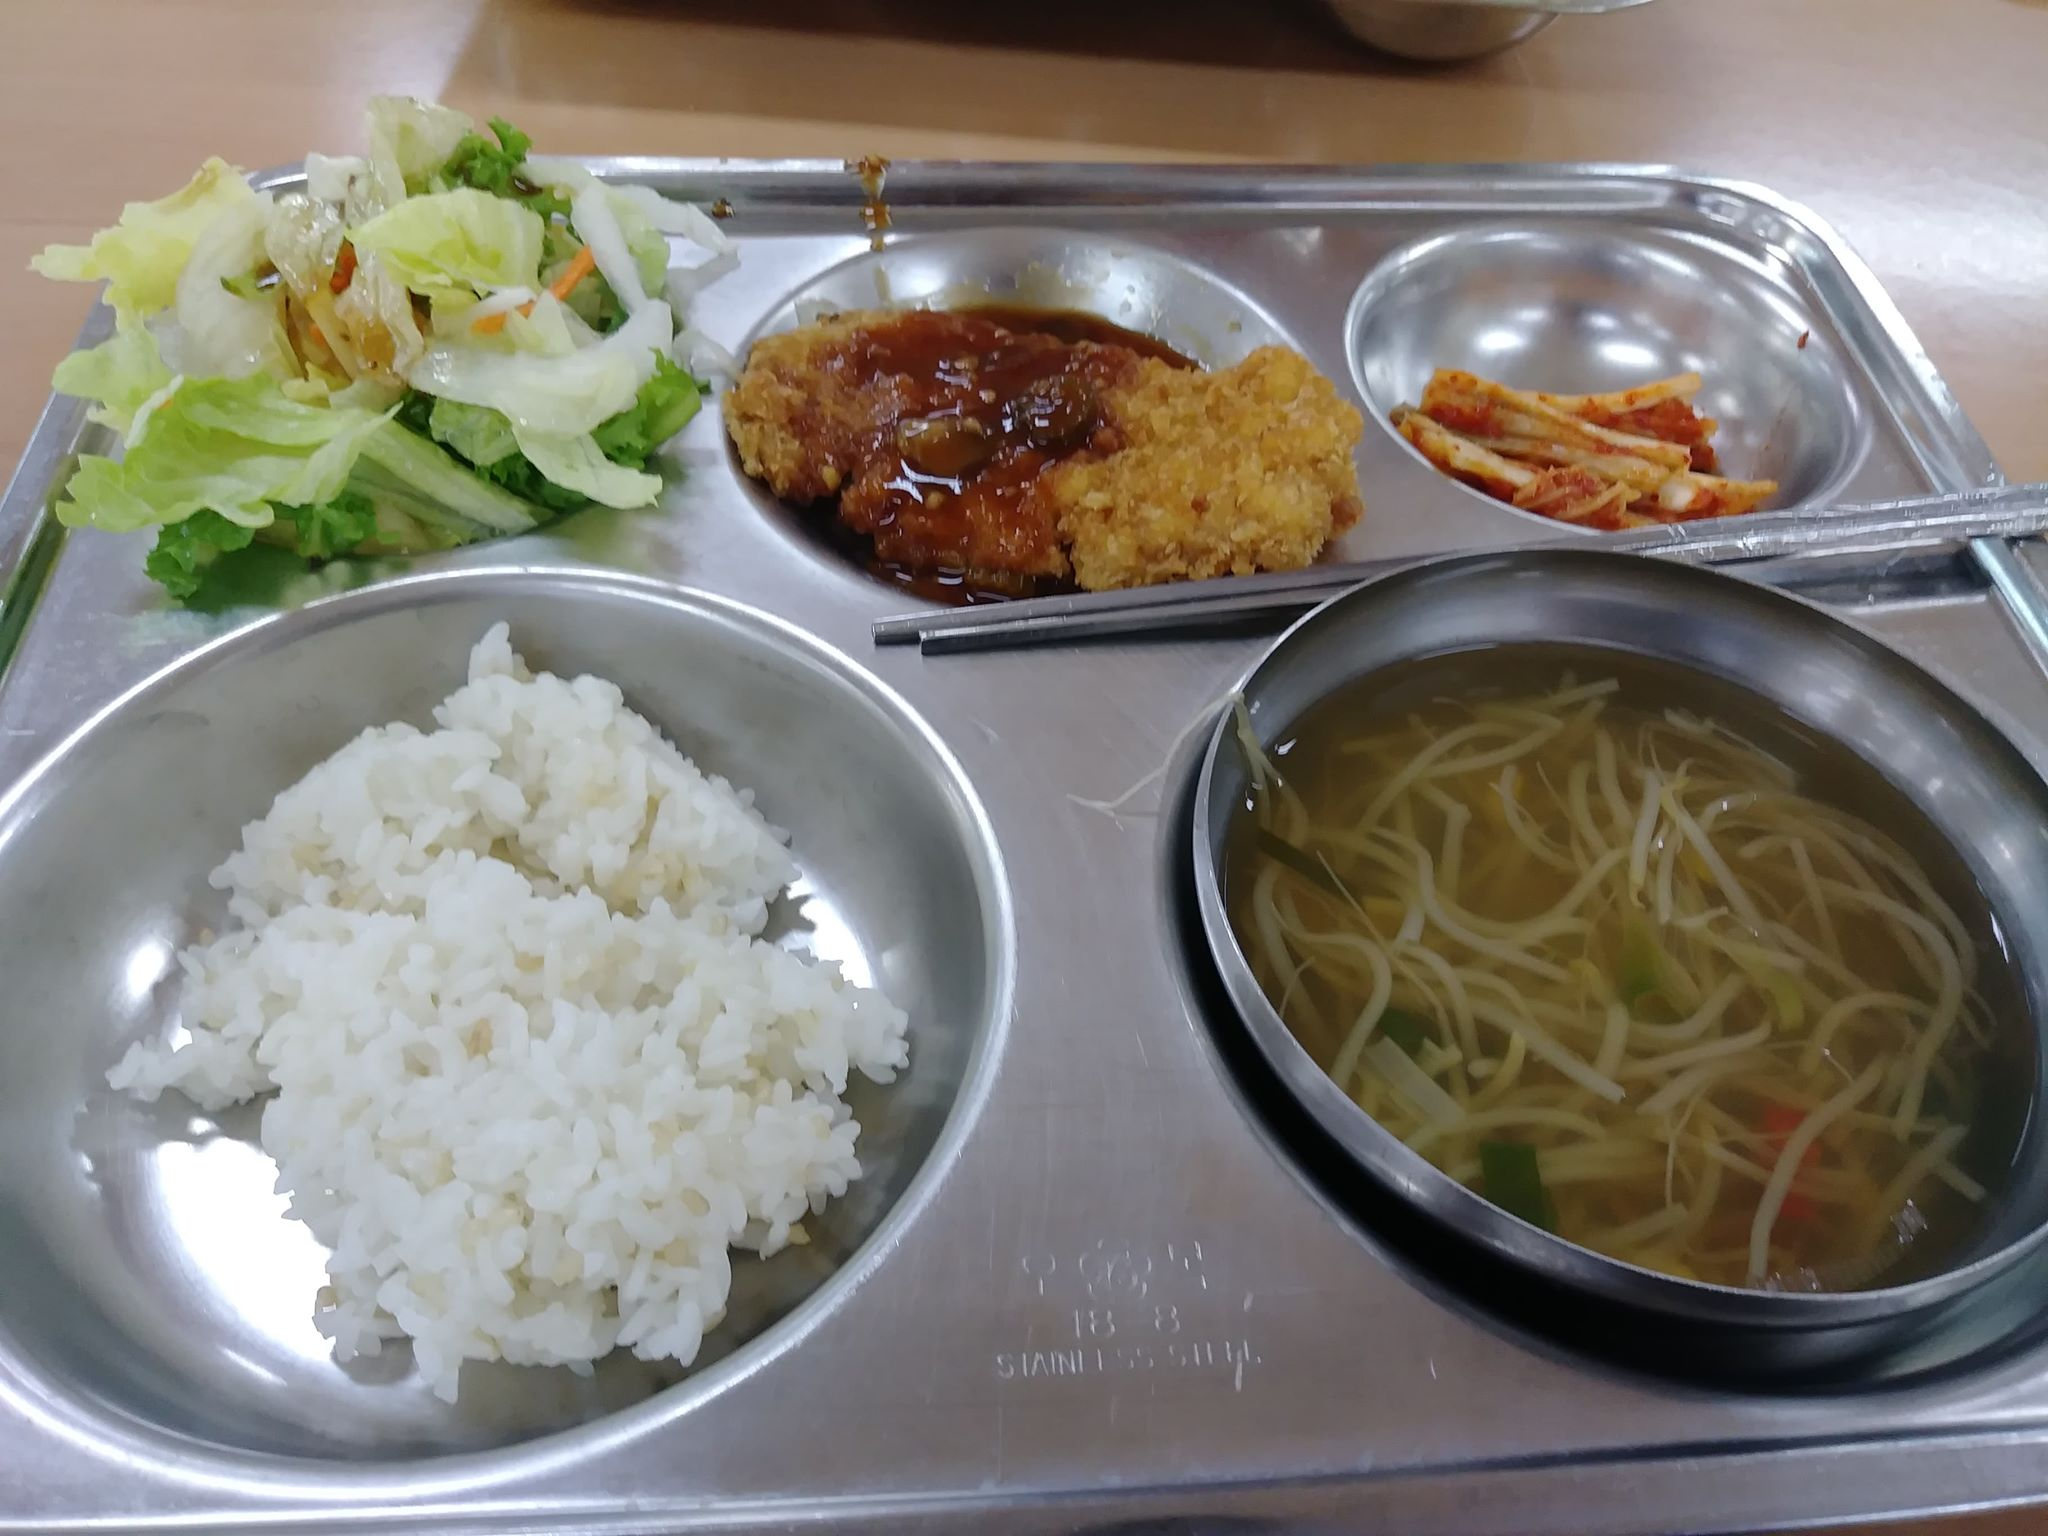 Food_SchoolFoodKorea_body02.jpg.jpg